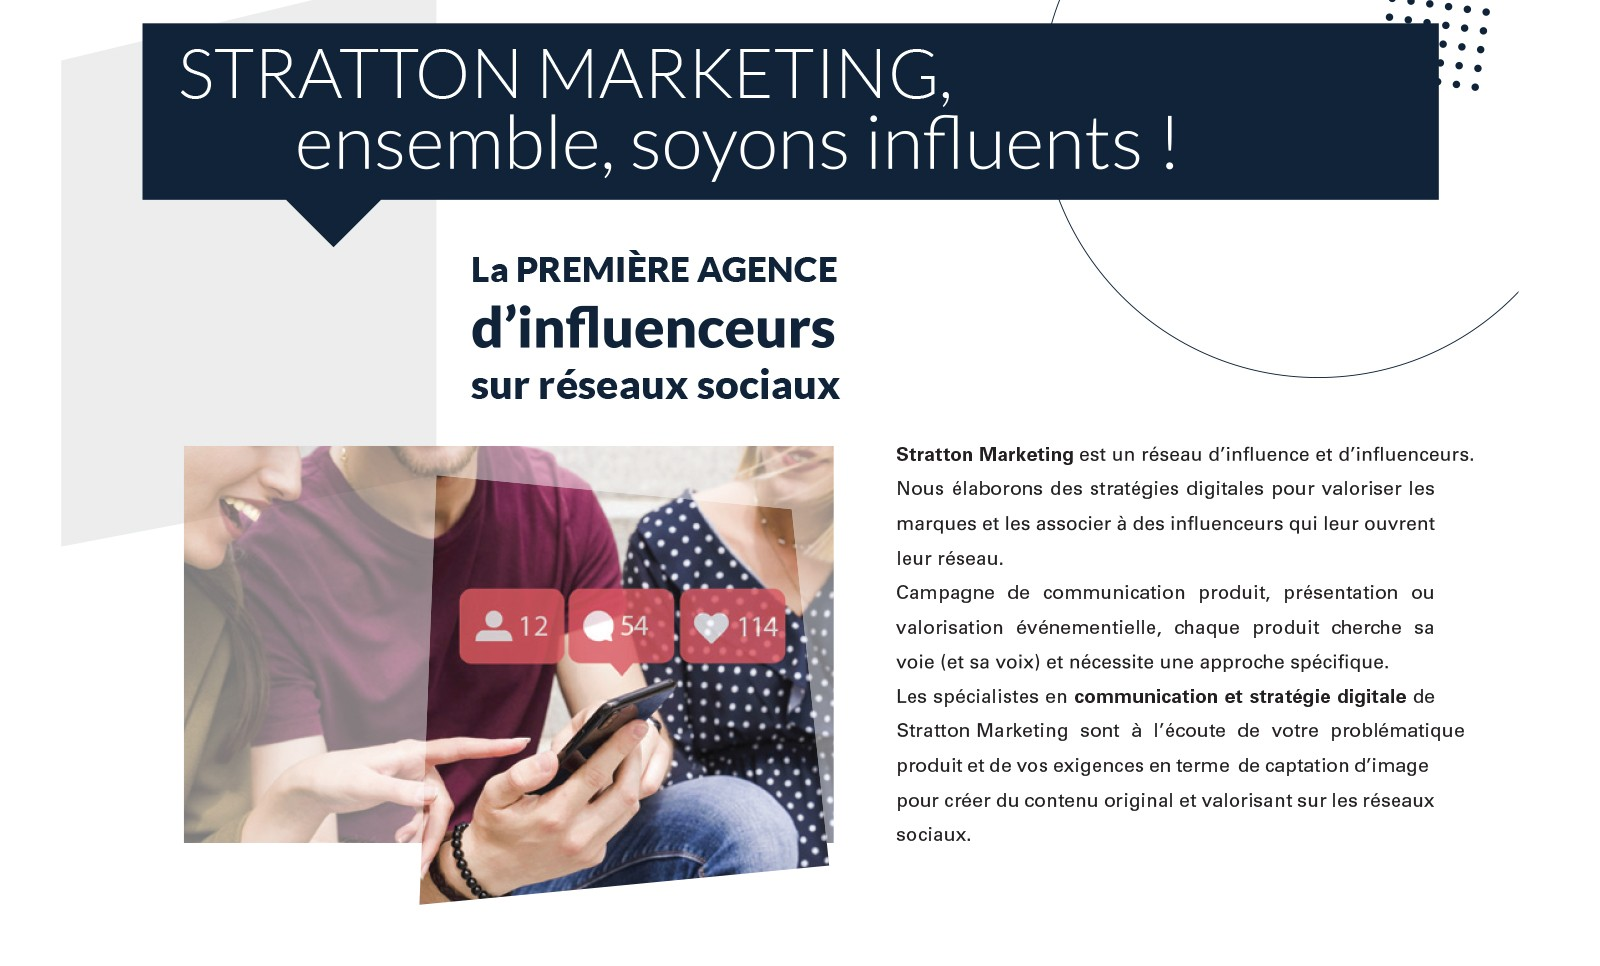 plaquette-strattonmarketing